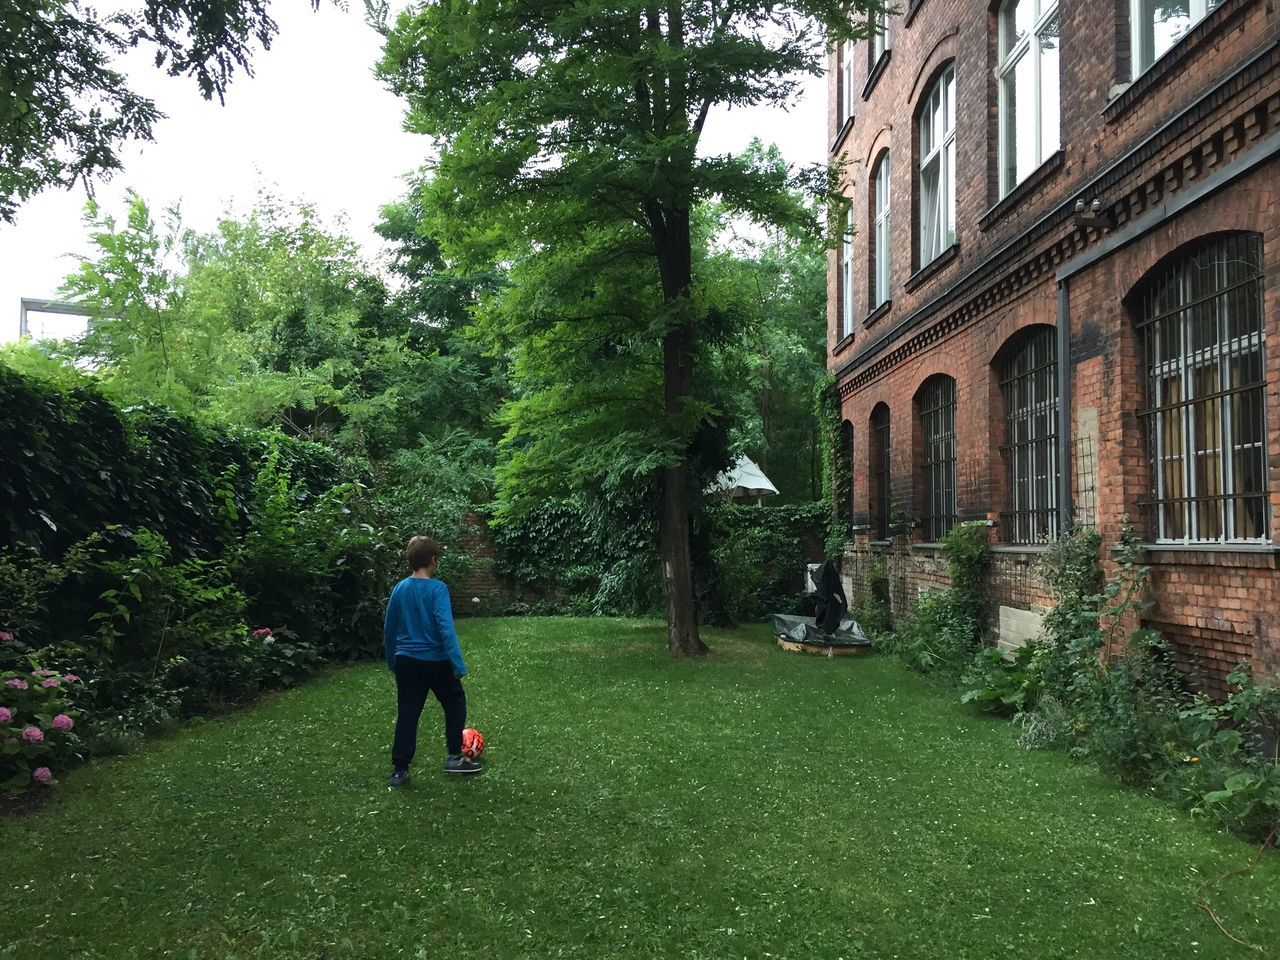 Berlin Kreuzberg Achritechture Architecture Backyard Beauty In Nature Berlin Boy Day Football Full Length Grass Green Color Growth Kreuzberg Men Nature One Person Outdoors People Playing Real People Sky Tree